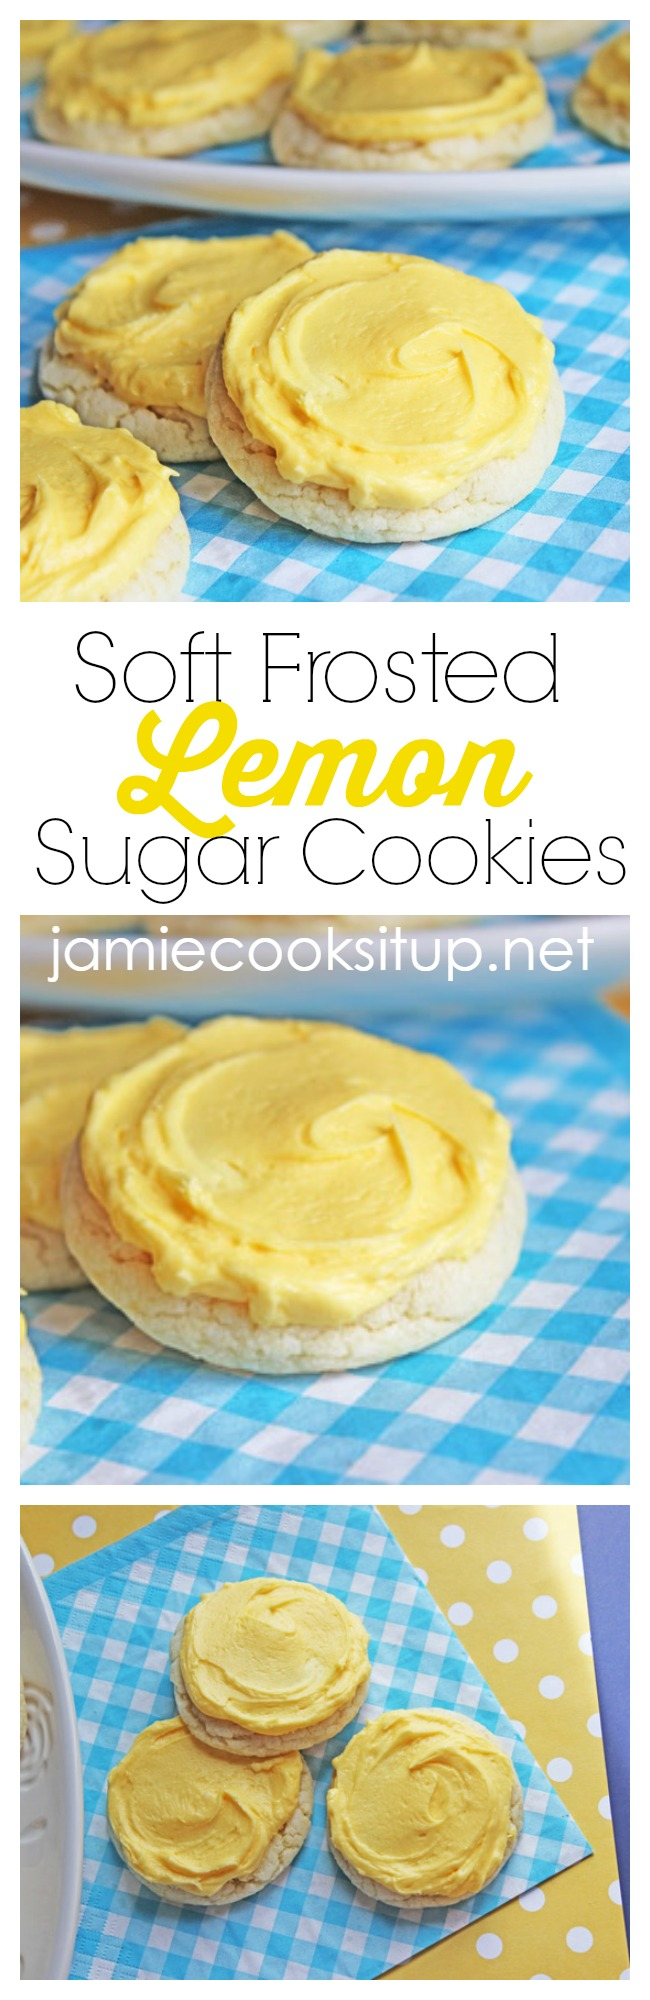 Soft Frosted Lemon Sugar Cookies from Jamie Cooks It Up!